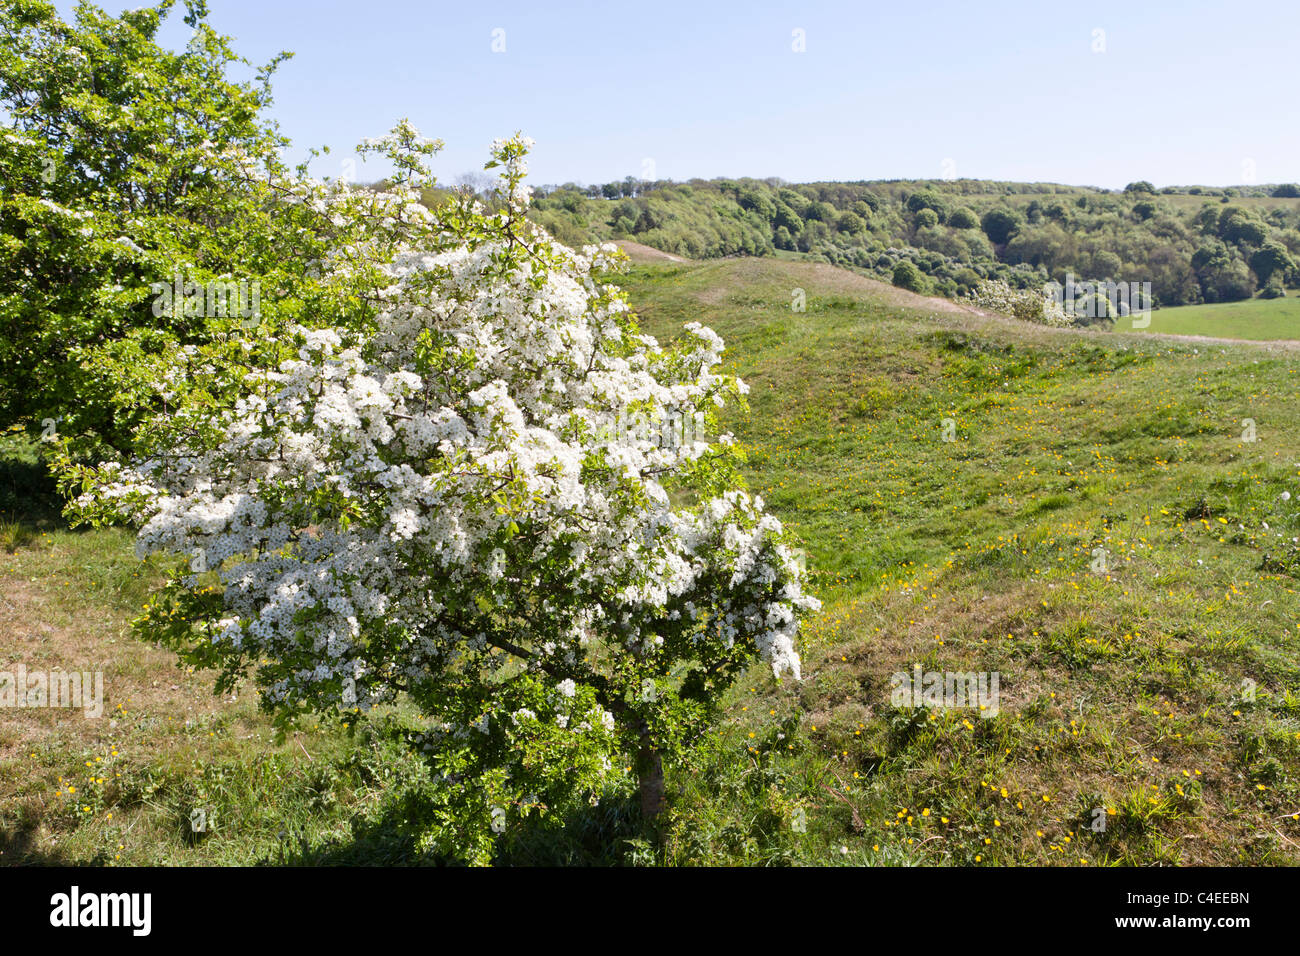 Hawthorn in blossom in springtime beside the Cotswold Way National Trail on Haresfield Hill, Gloucestershire, England - Stock Image